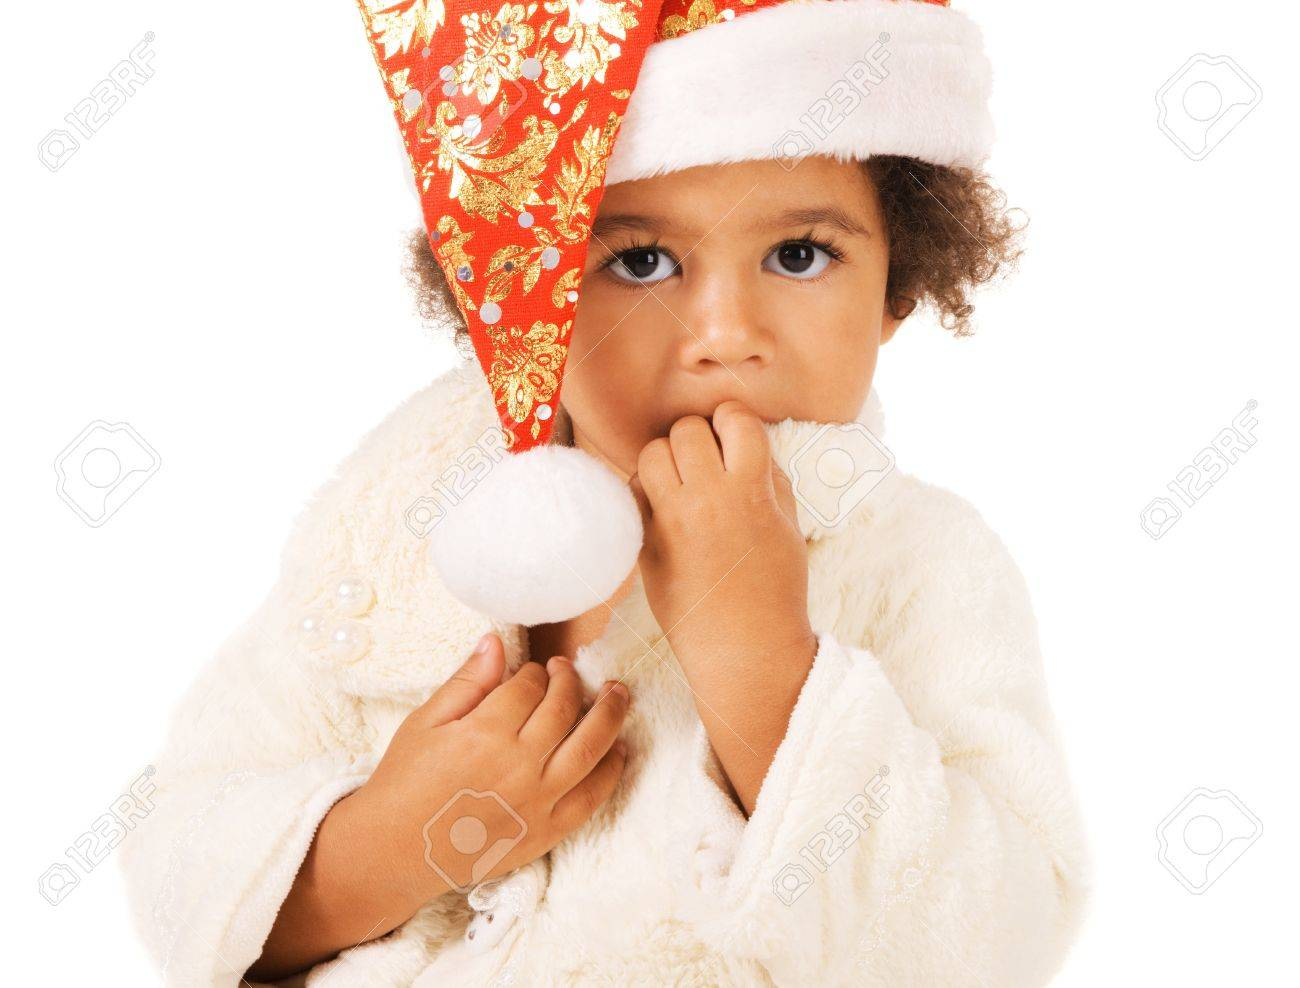 3afac0c63 Portrait of a cute baby in Christmas hat and fur on white background